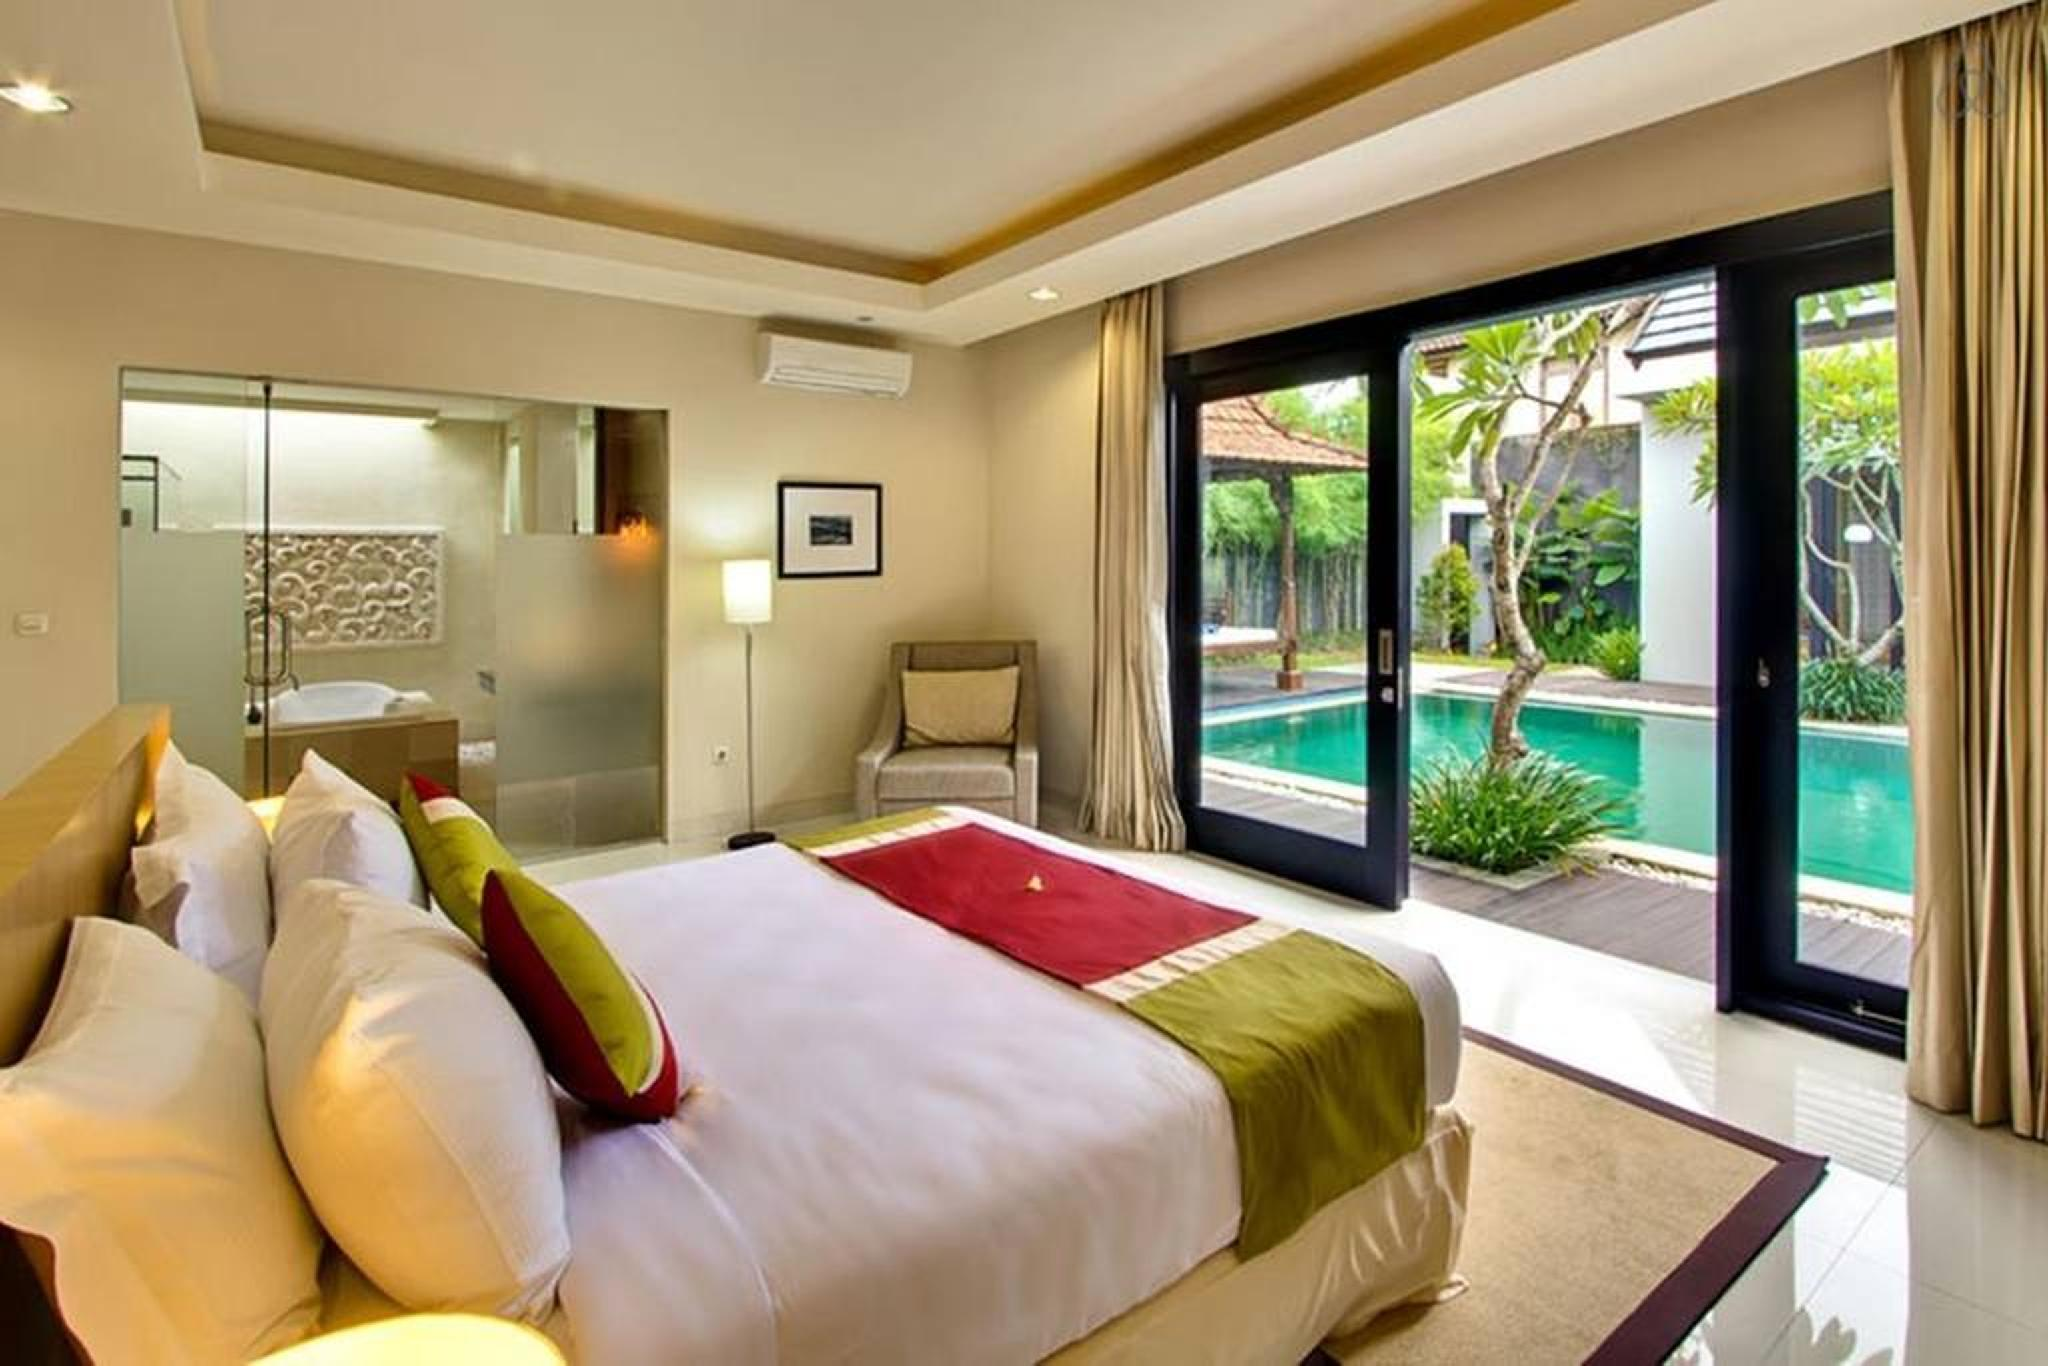 3 BDR Luxury private Villa in Seminyak